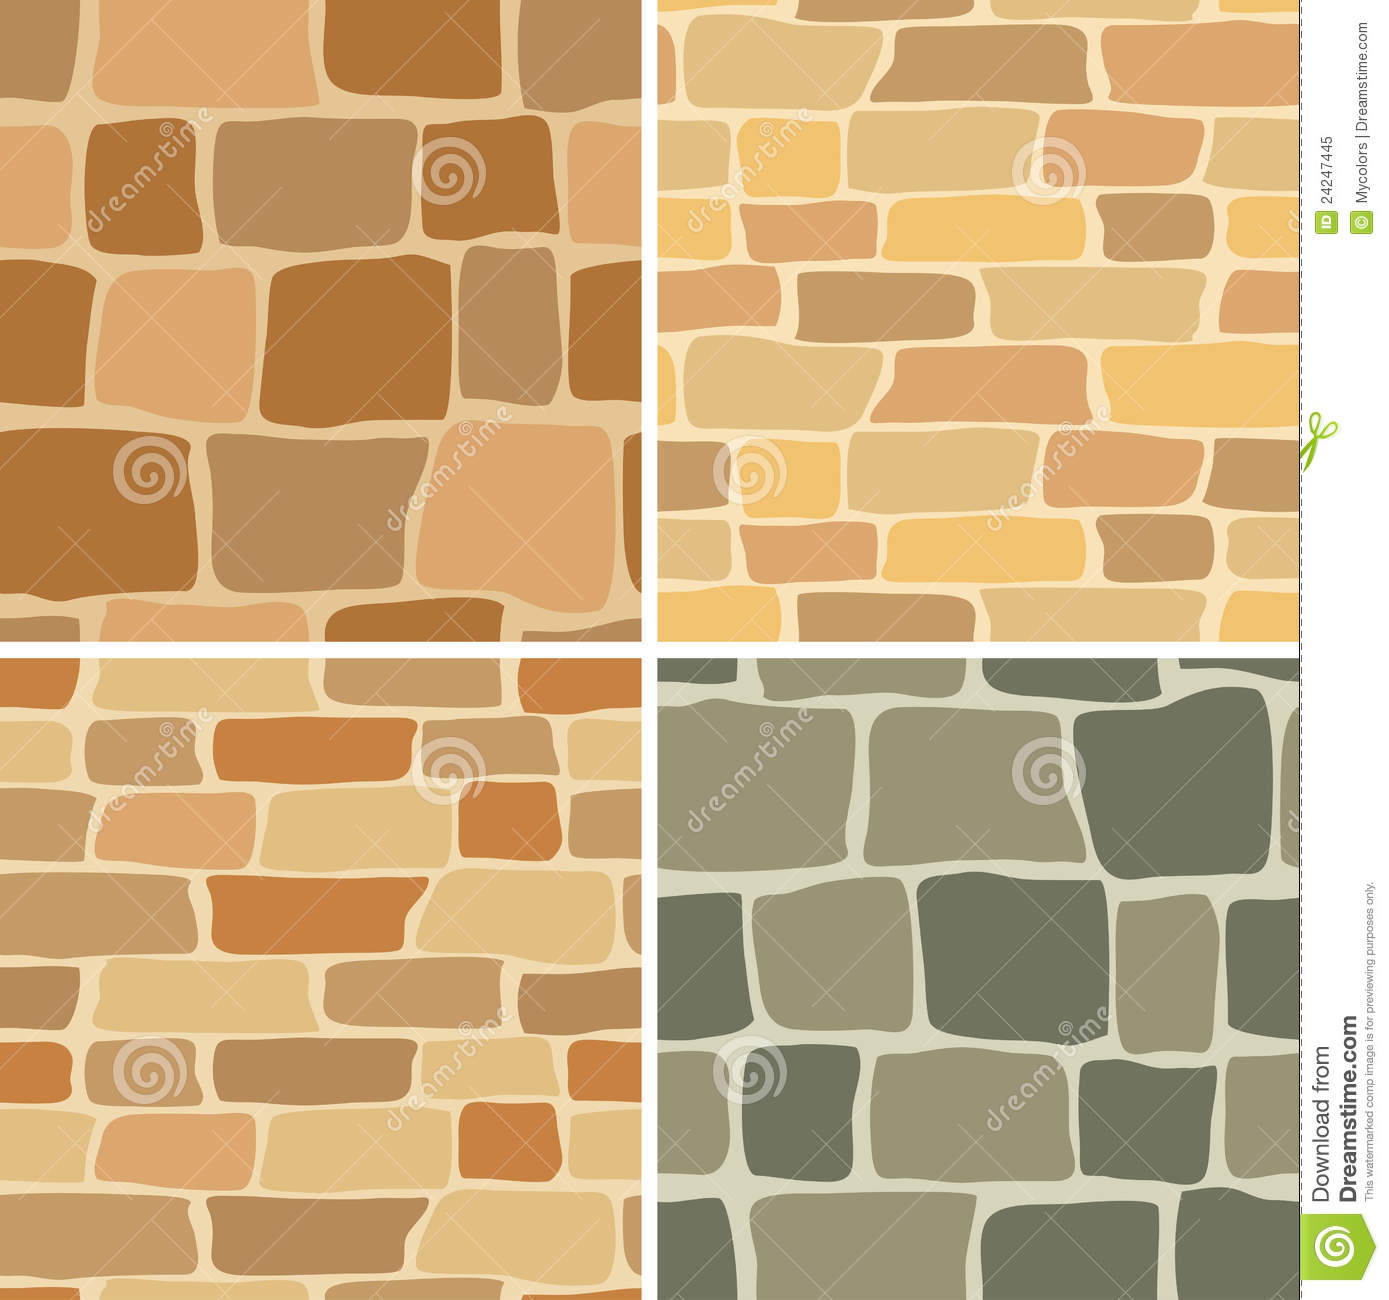 Set - Stone Wall - Seamless Patterns - Vector Stock Vector ...